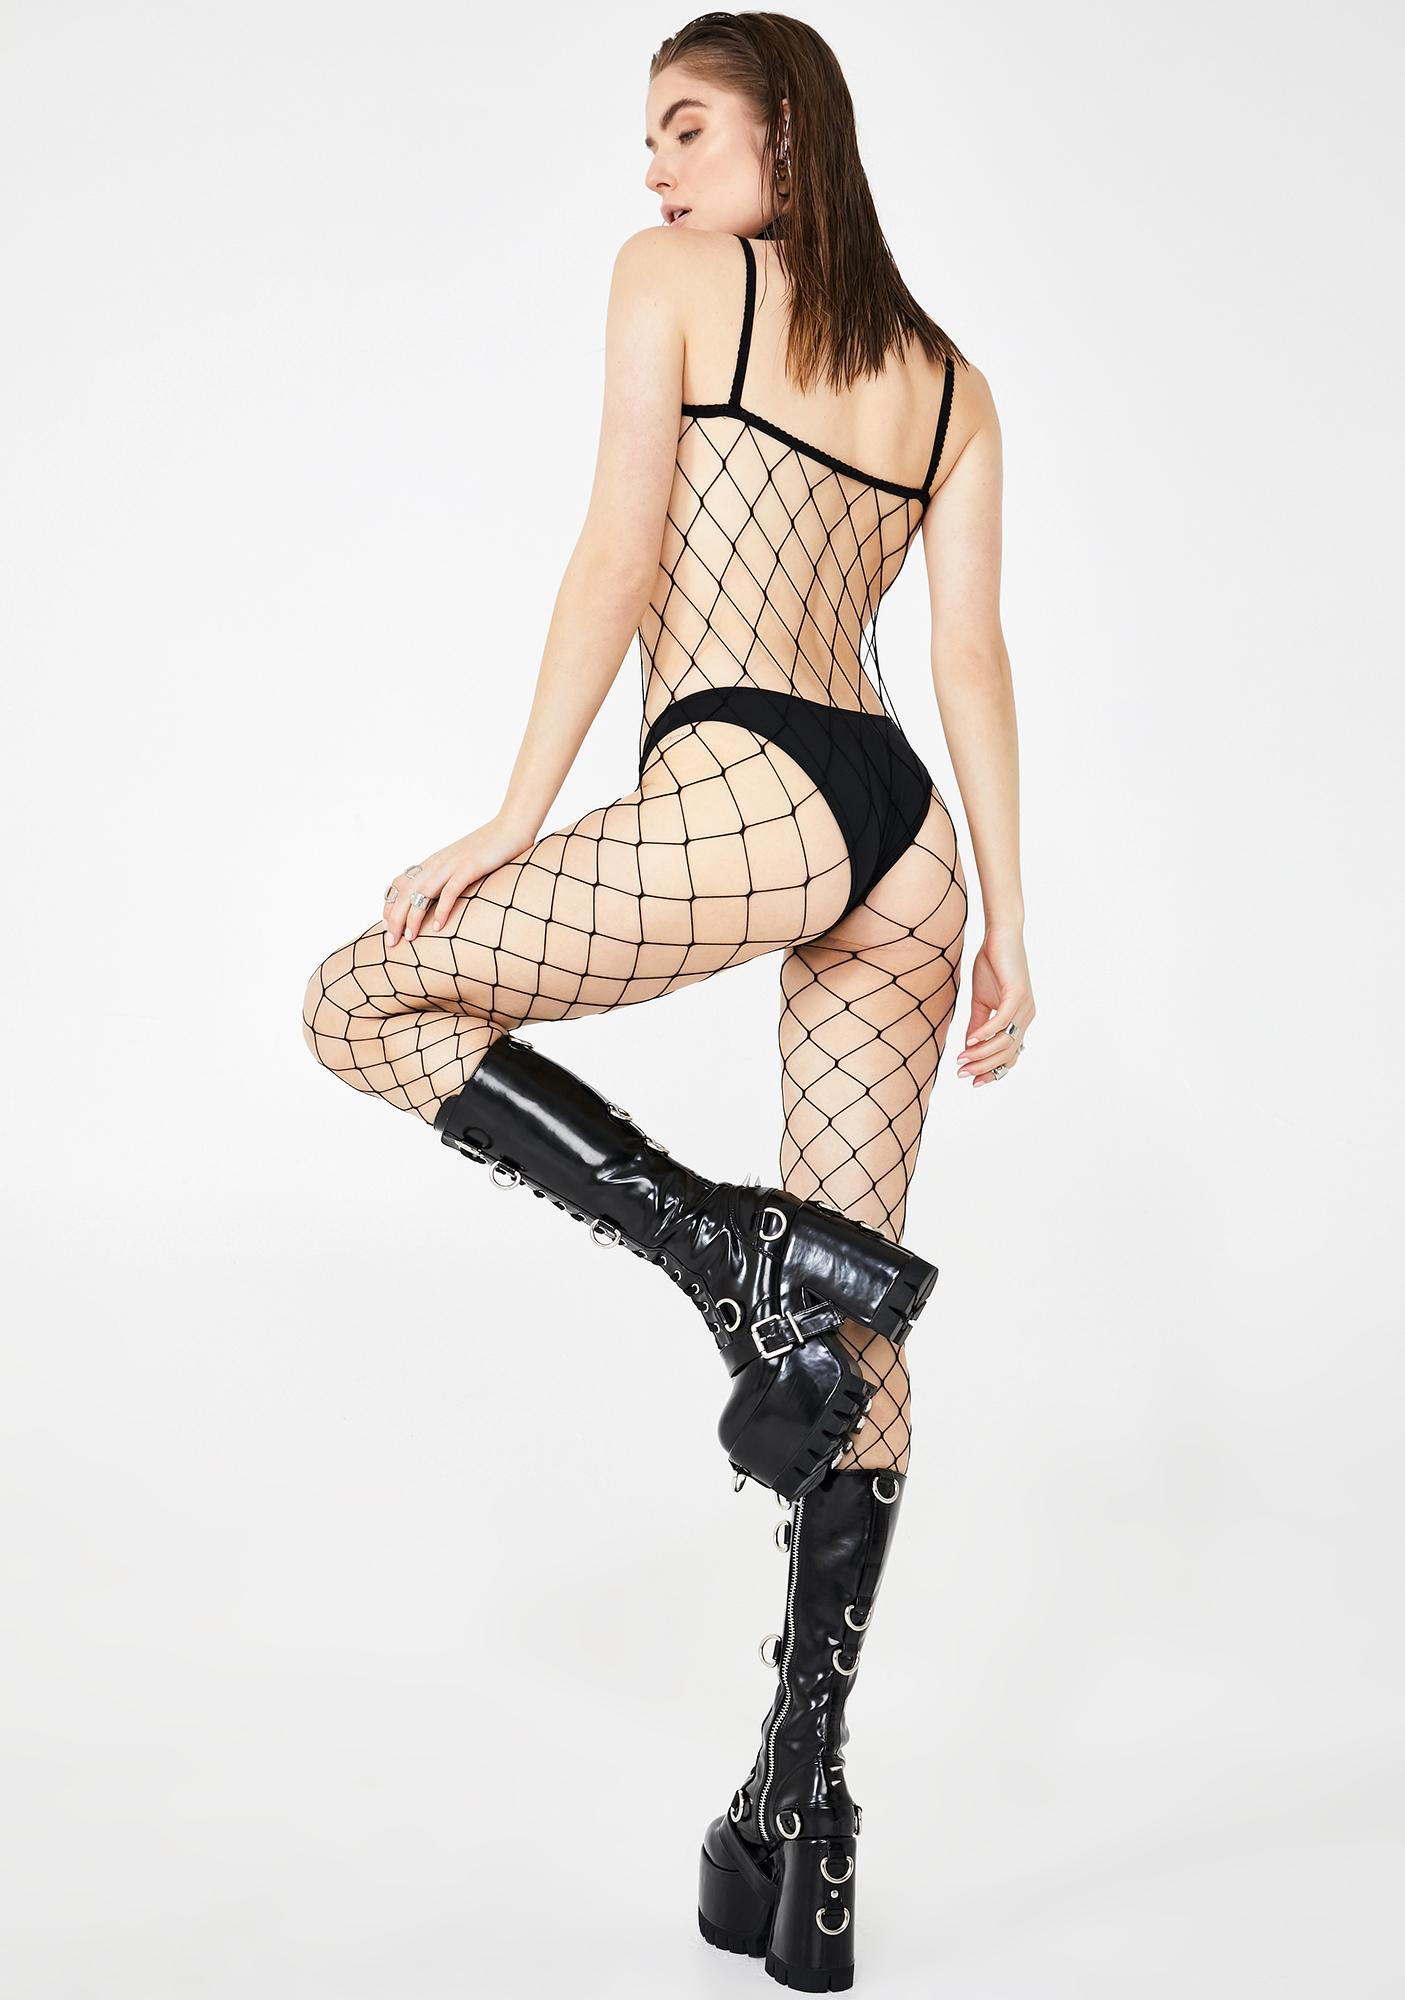 Entice 'Em Fence Net Bodystocking